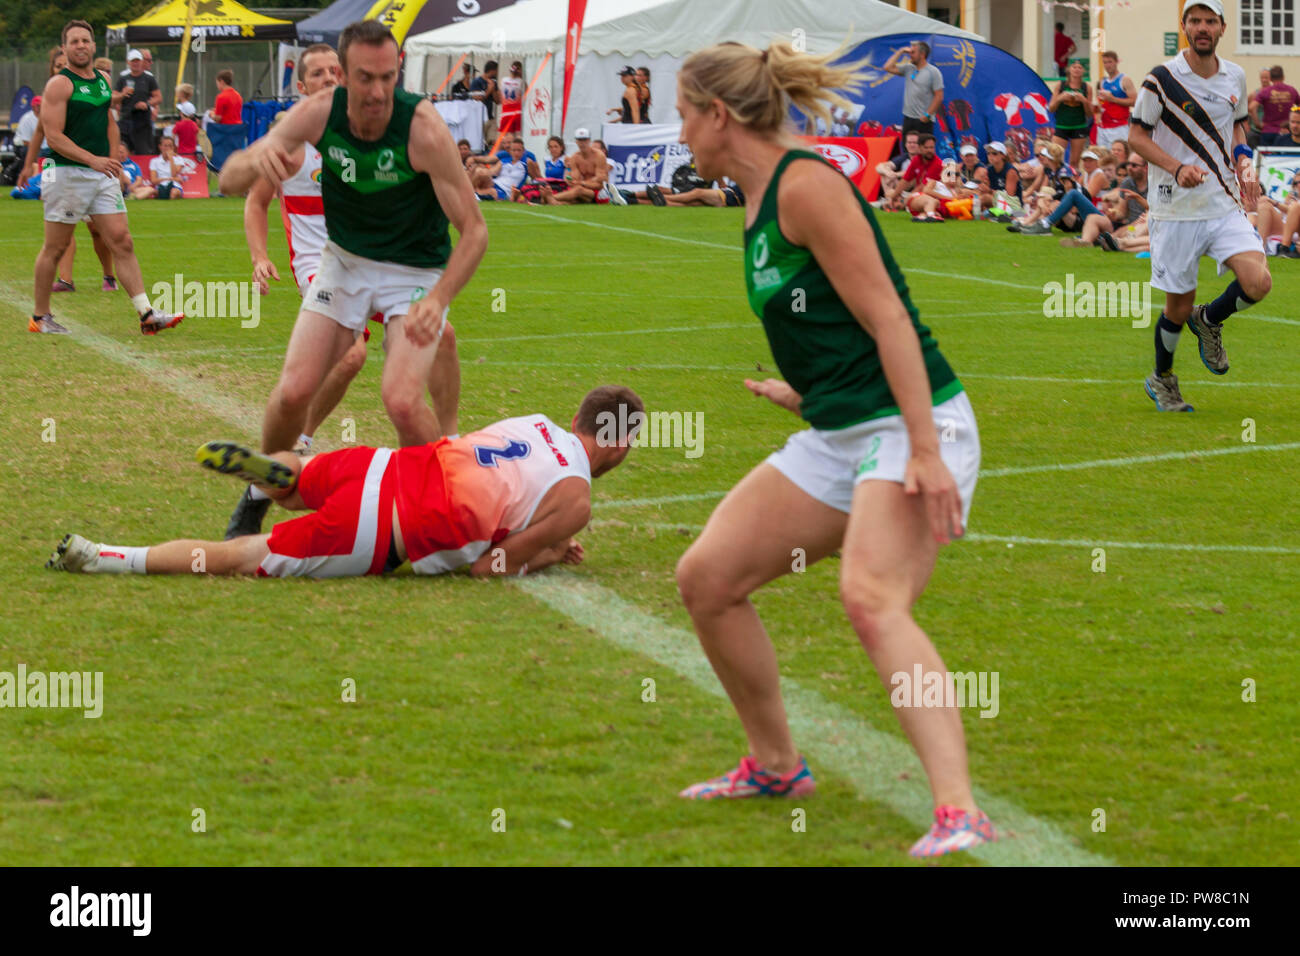 touch rugby European finals in Nottingham 2018 Stock Photo